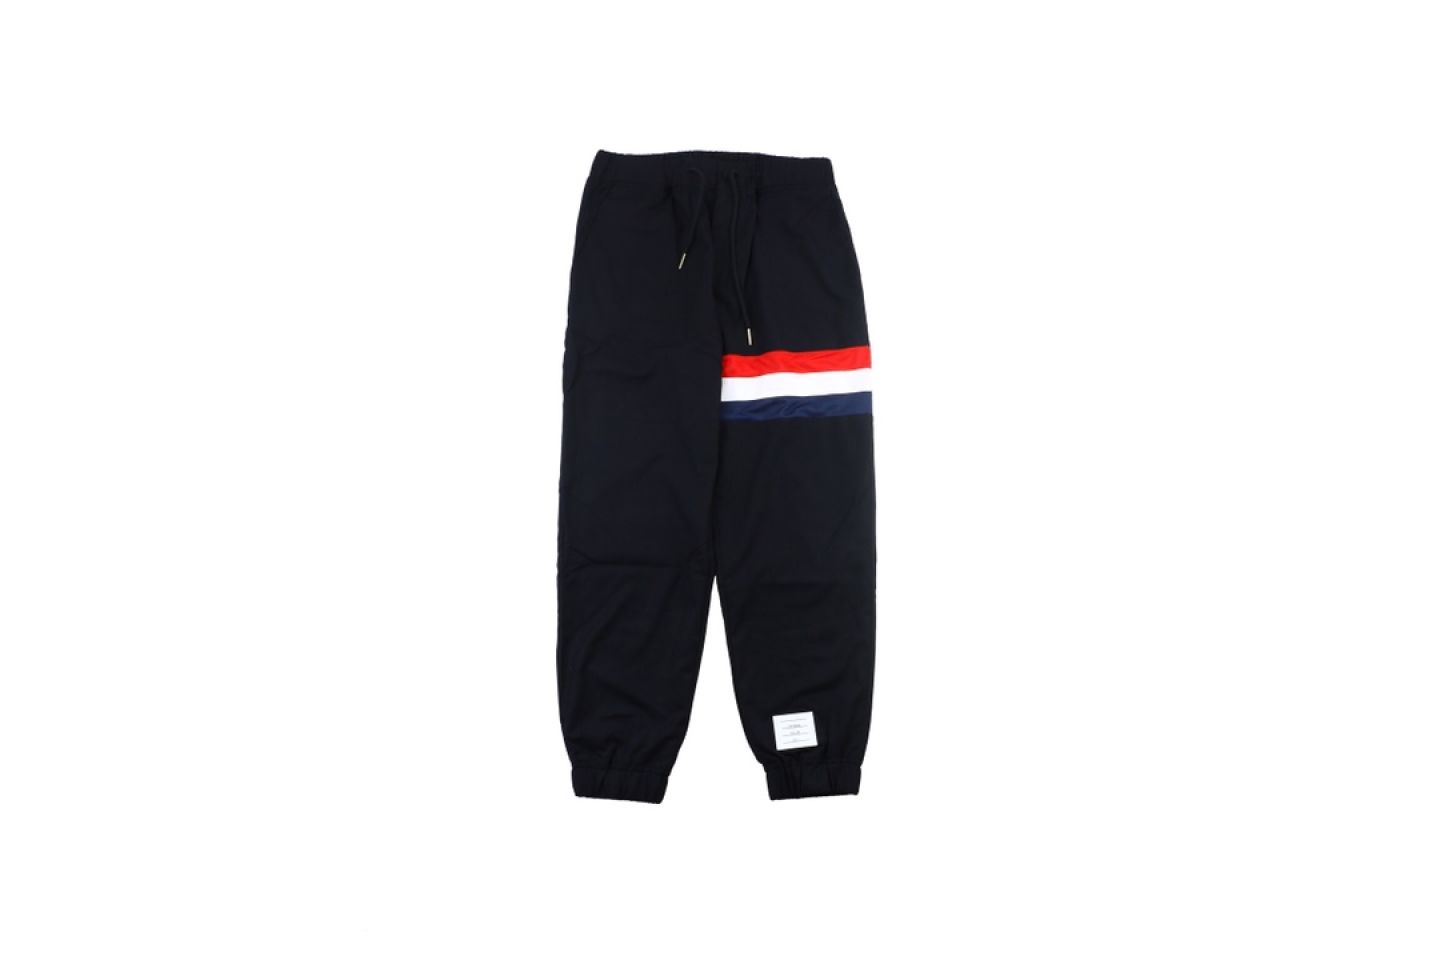 "Pants Thom browen 20fw sports sweatpants ""Navy Blue"" 1 1"